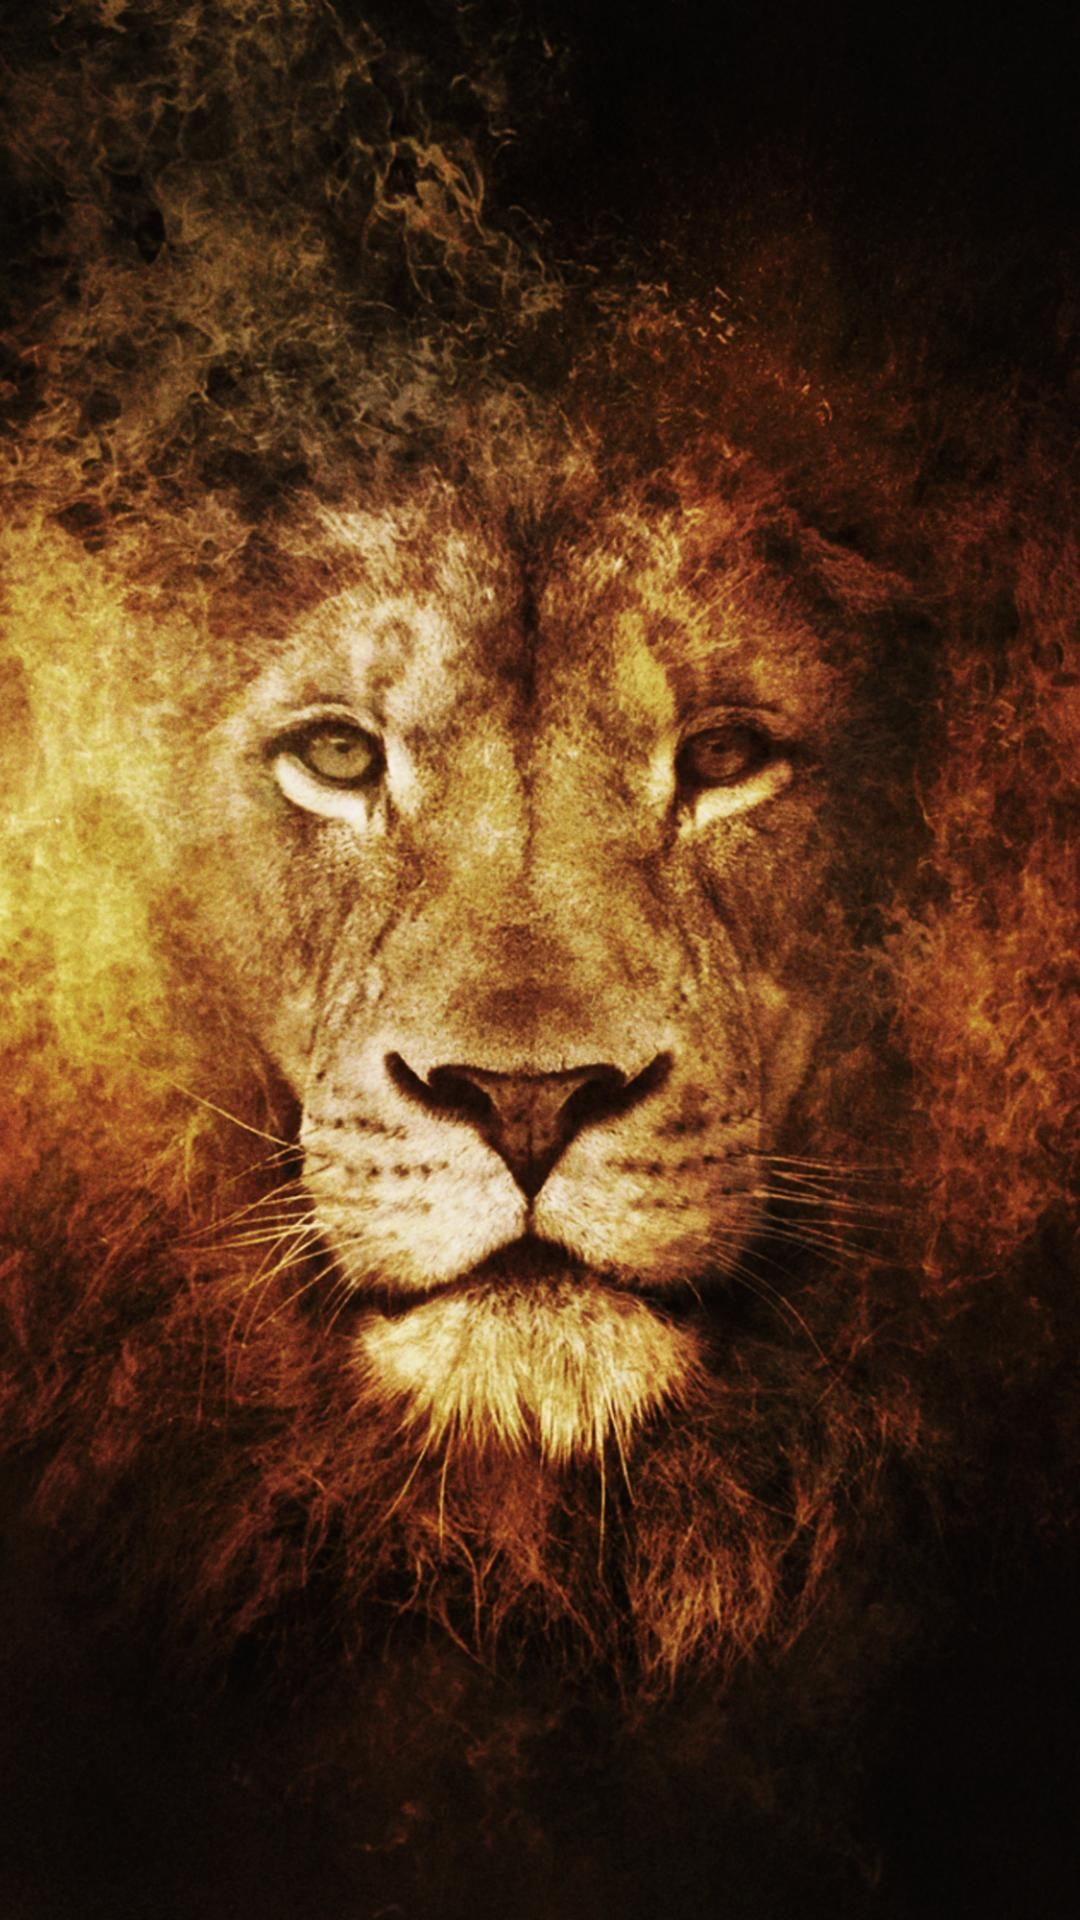 Lion Wallpaper Hd Animals Lion Iphone 6 Plus Wallpaper Tat Animals